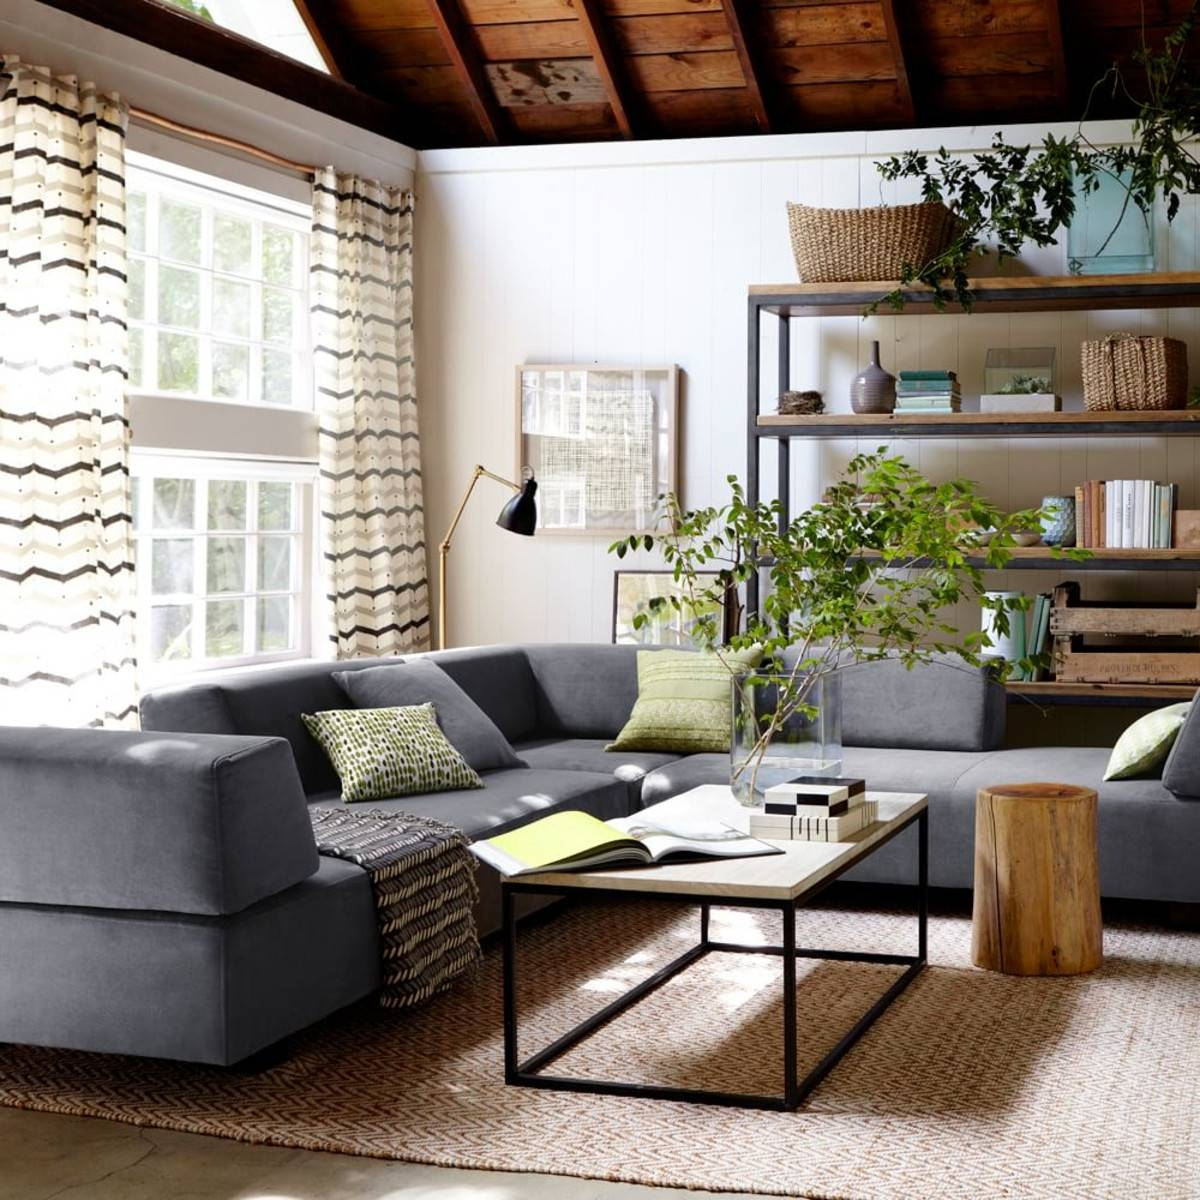 Furniture: Henry Sectional West Elm Reviews | West Elm Sofa within West Elm Sectional Sofa (Image 9 of 30)